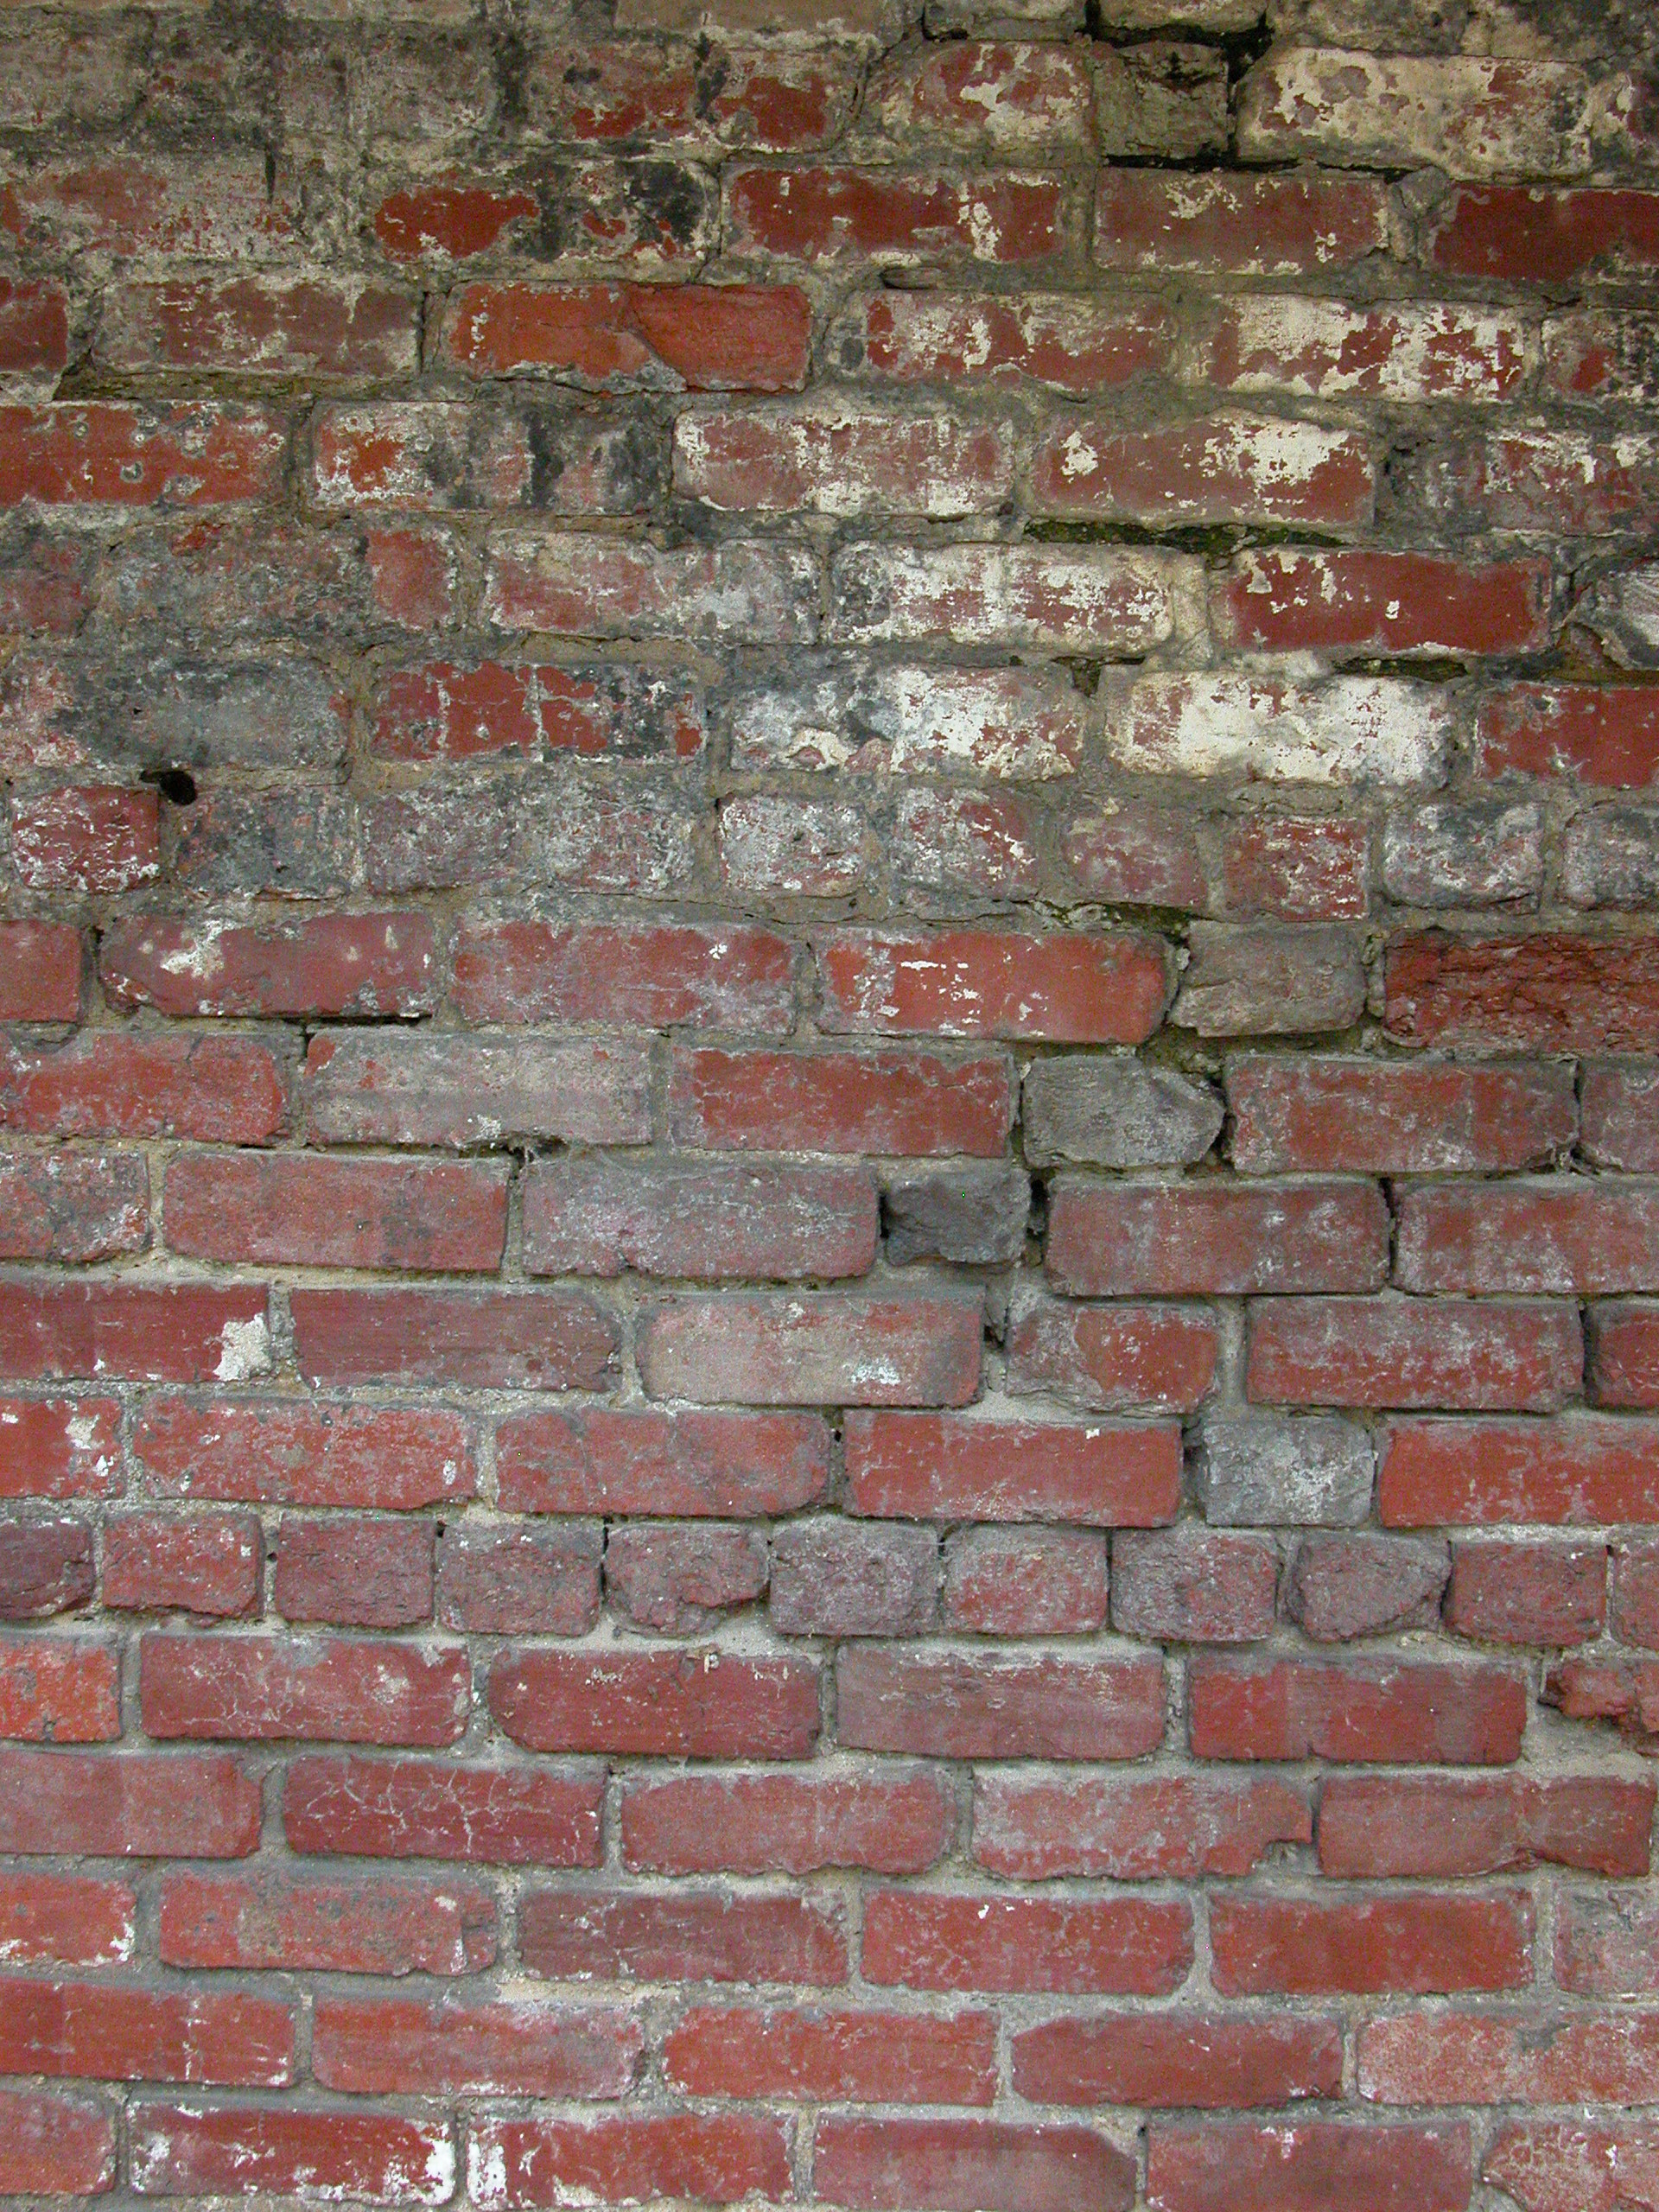 Wall Art For Brick : Brick wall stock by hauntingvisionsstock on deviantart